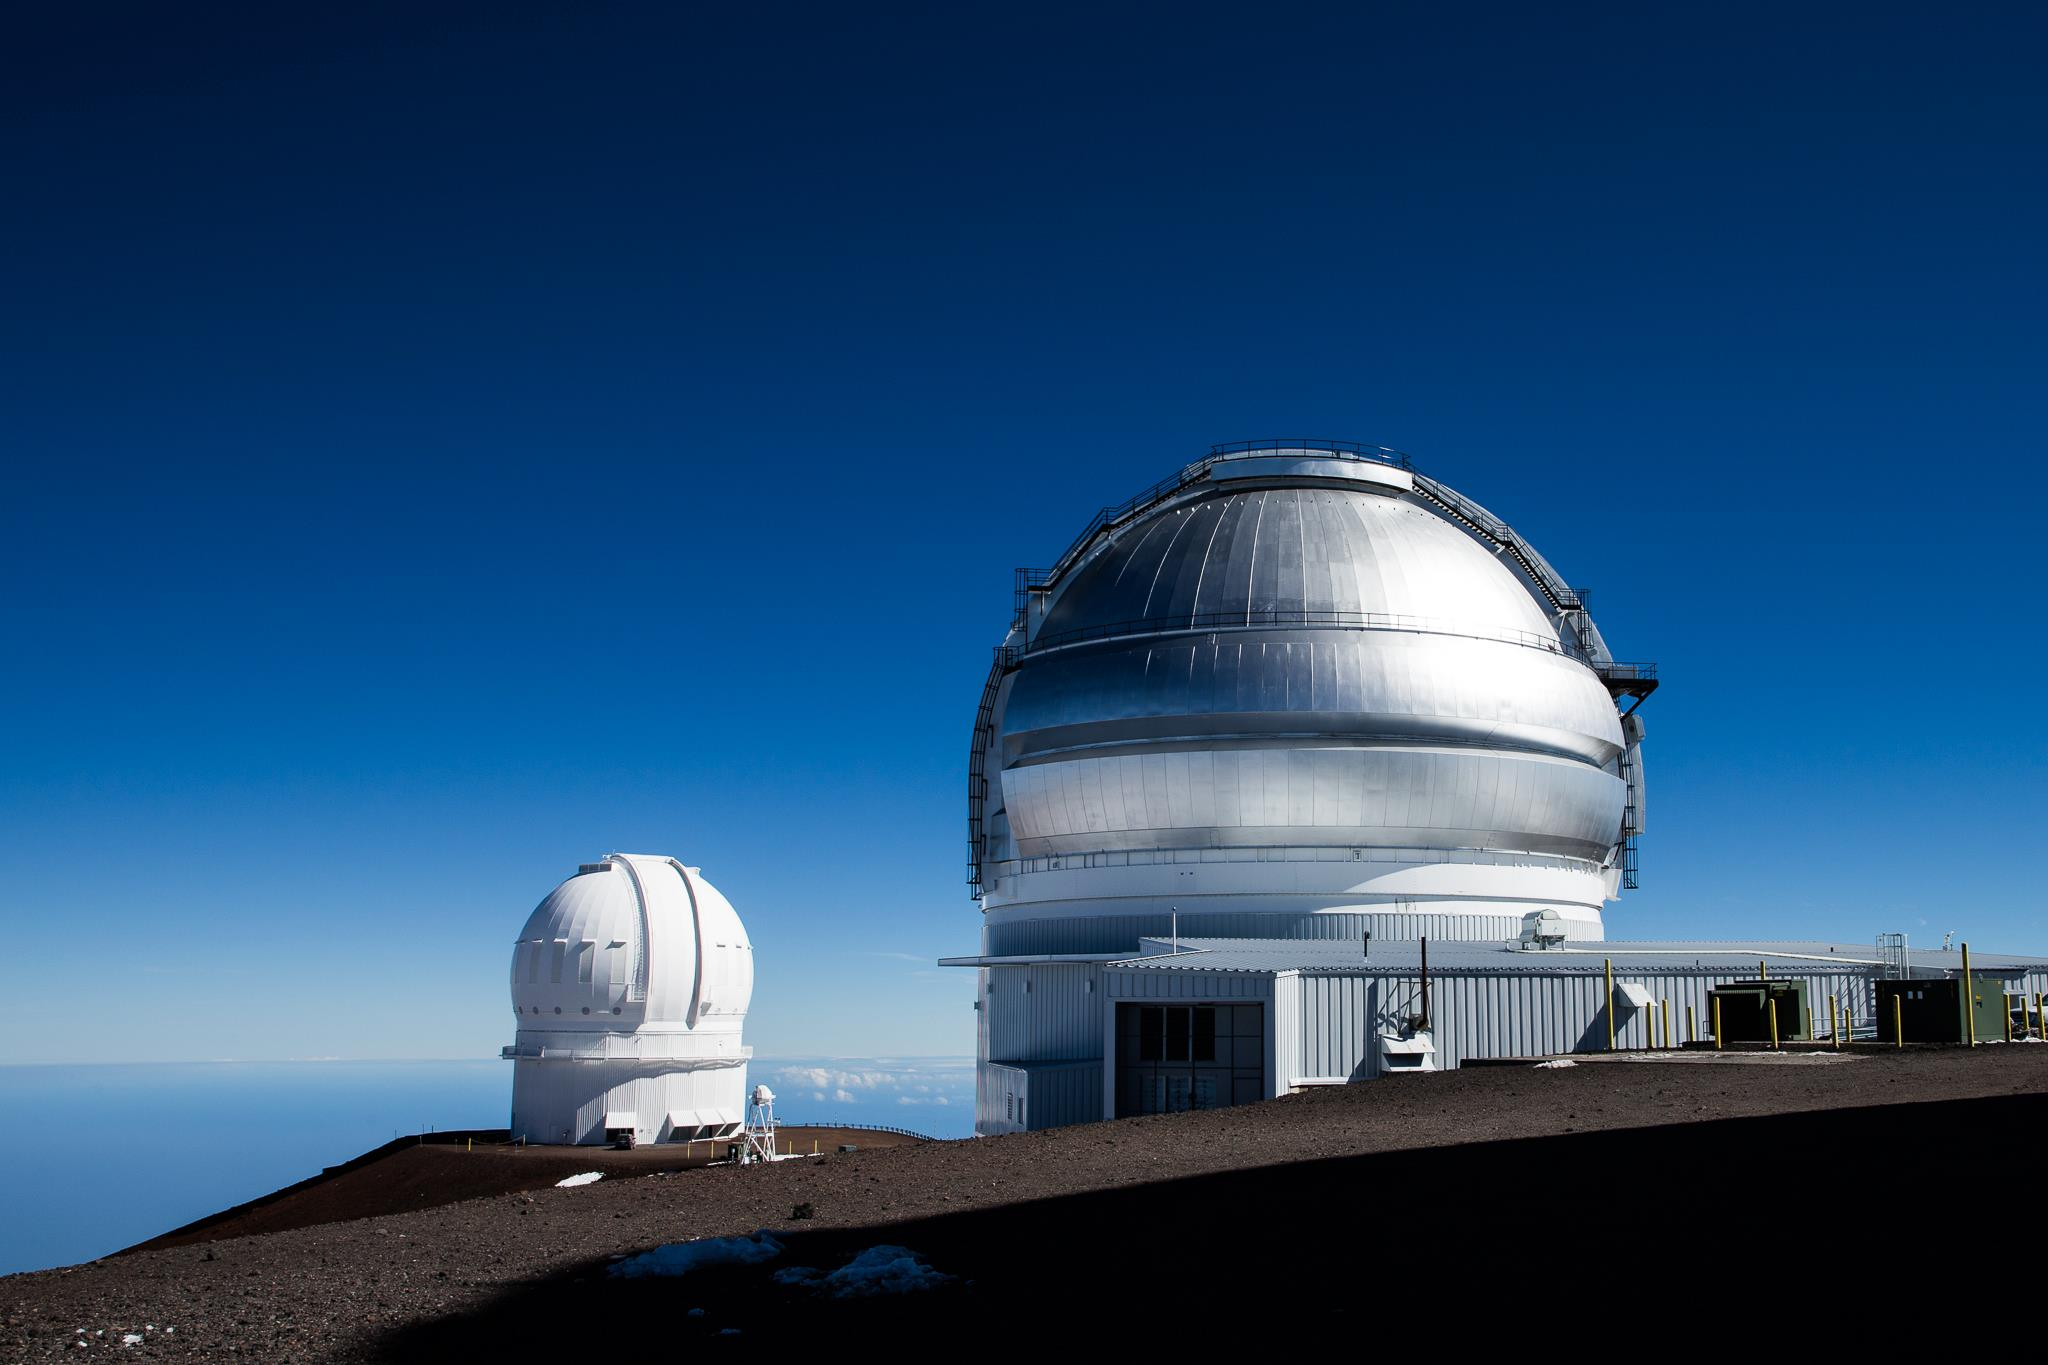 CFHT and Gemini domes next to each other on the Mauna Kea summit (credits Joy Pollard, Gemini/Aura).